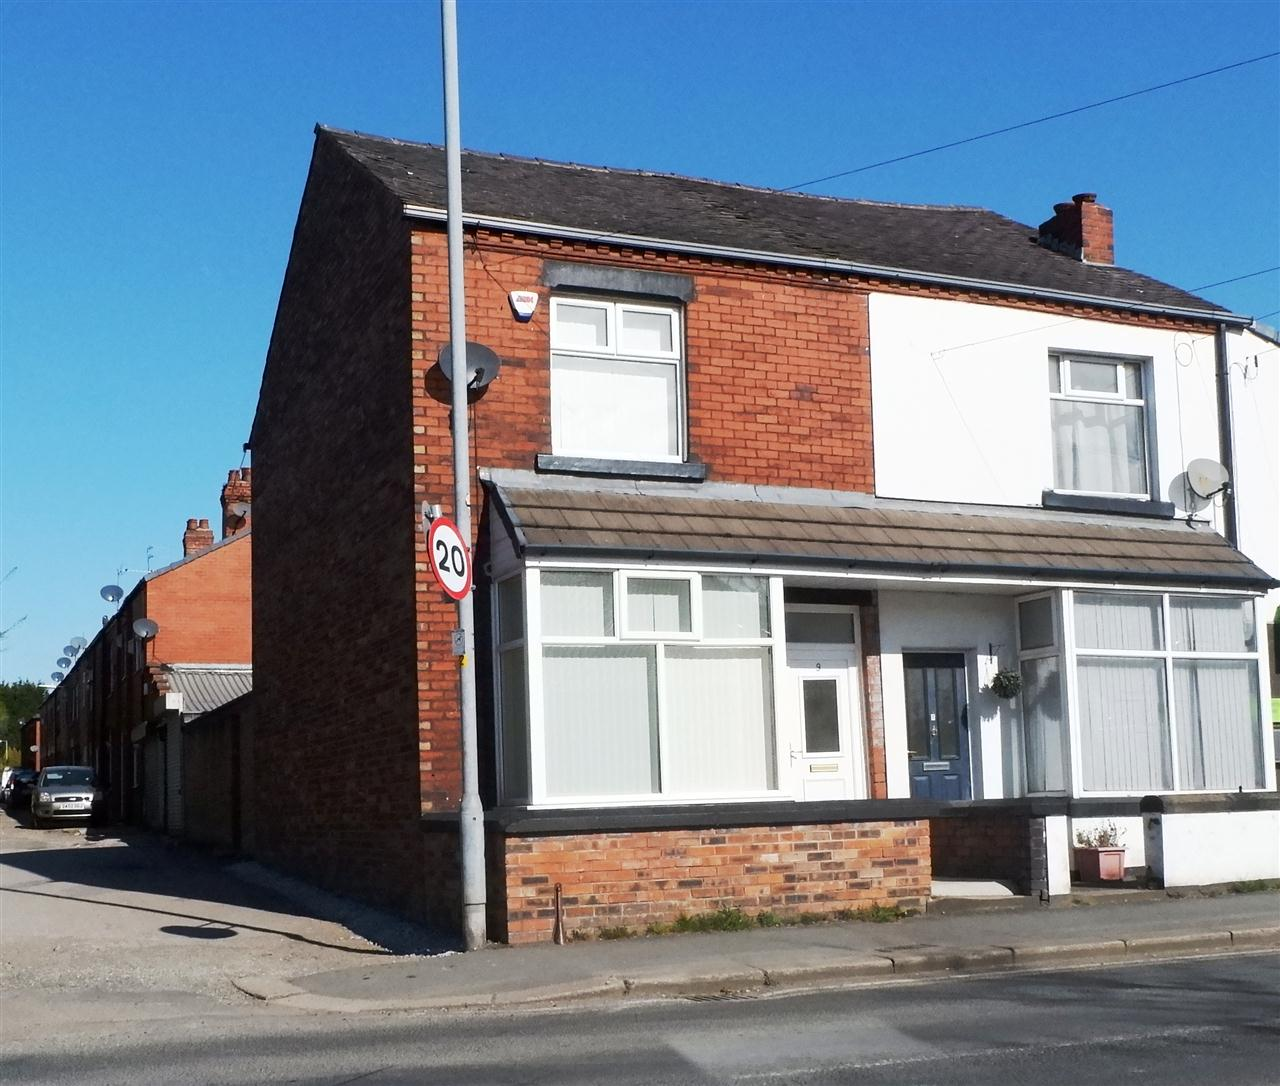 3 bed end-of-terrace for sale in Mason St, Horwich, BL6